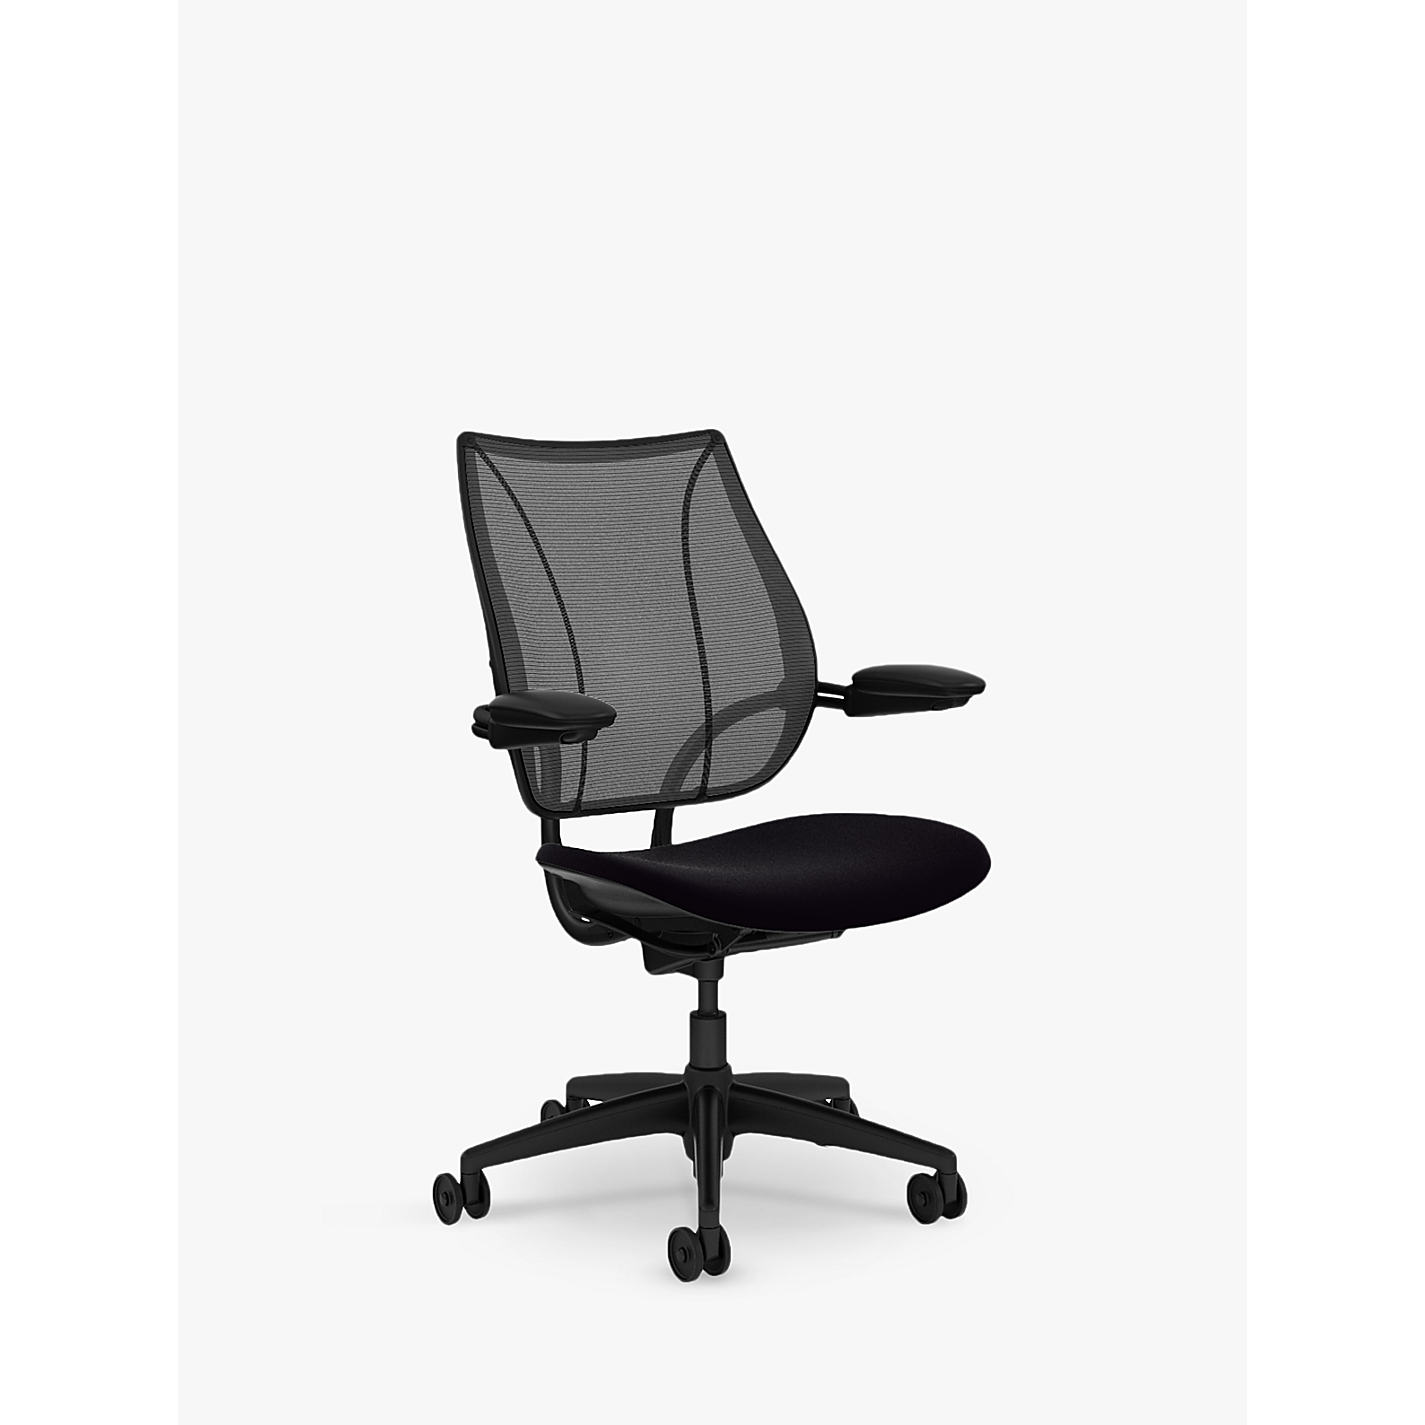 Buy Humanscale Liberty fice Chair Black